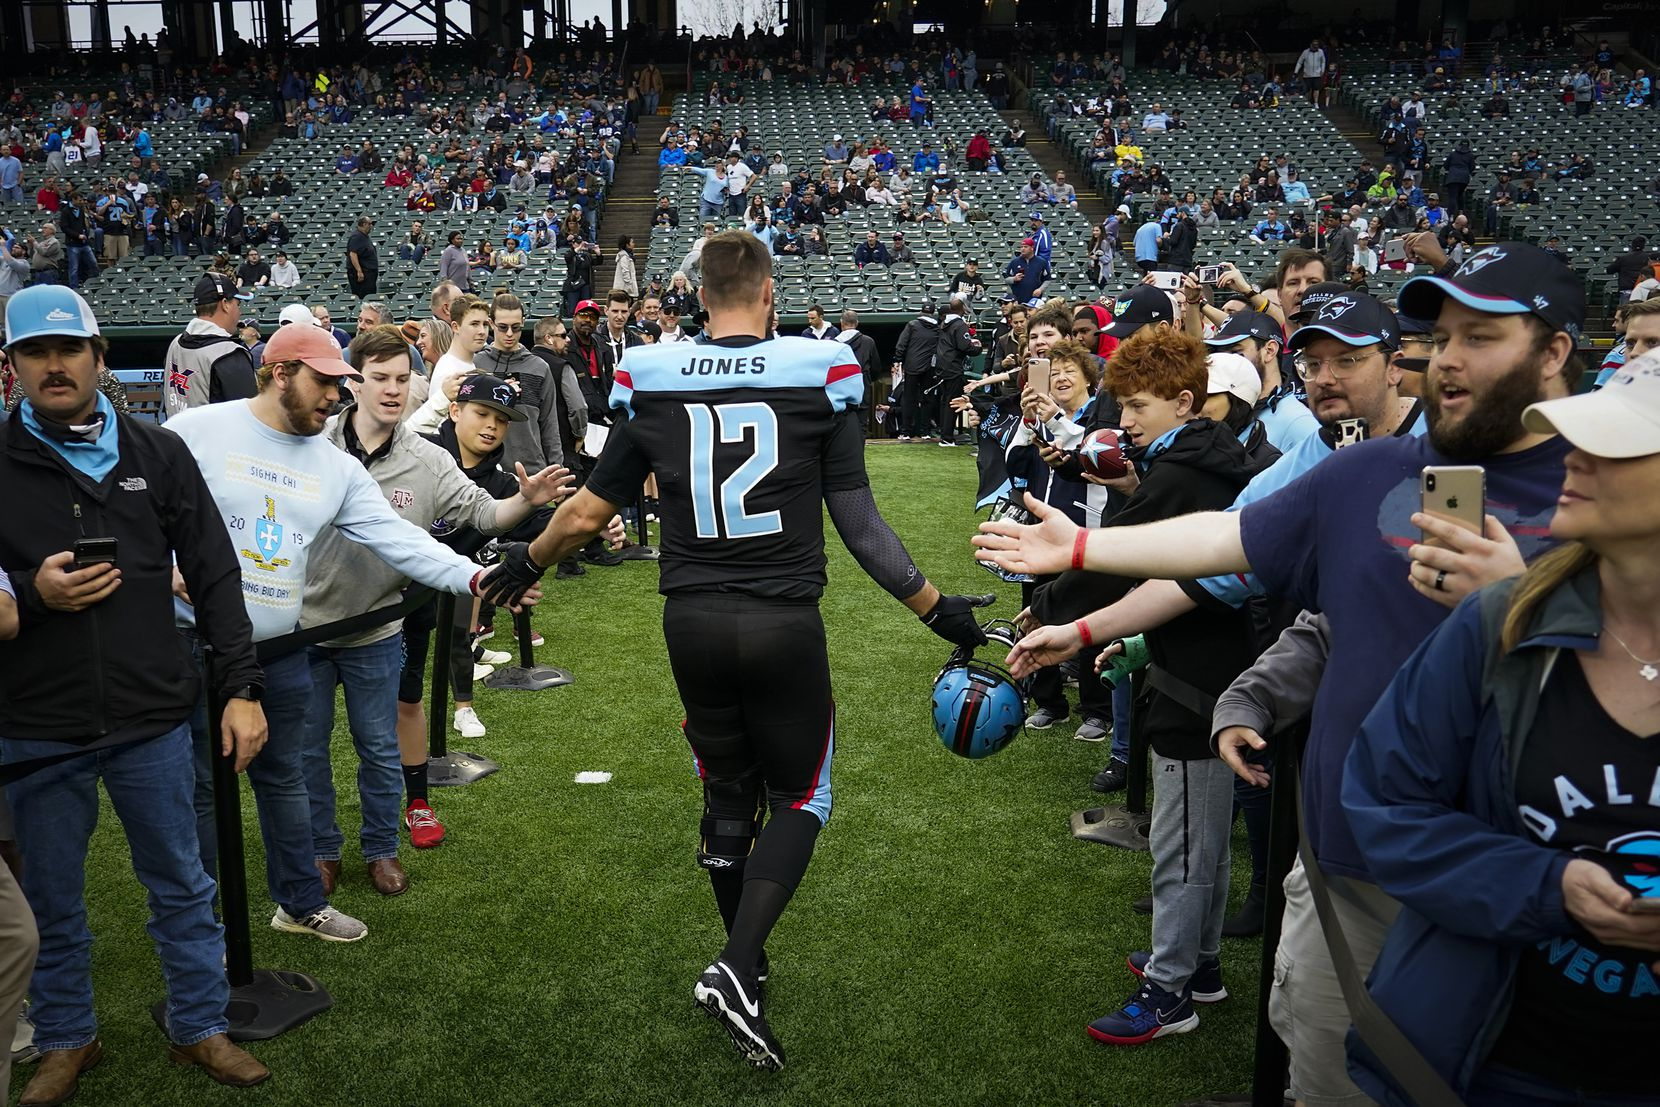 Dallas Renegades quarterback Landry Jones (12) high fives fans before an XFL football game against the St. Louis Battlehawks at Globe Life Park on Sunday, Feb. 9, 2020, in Arlington.